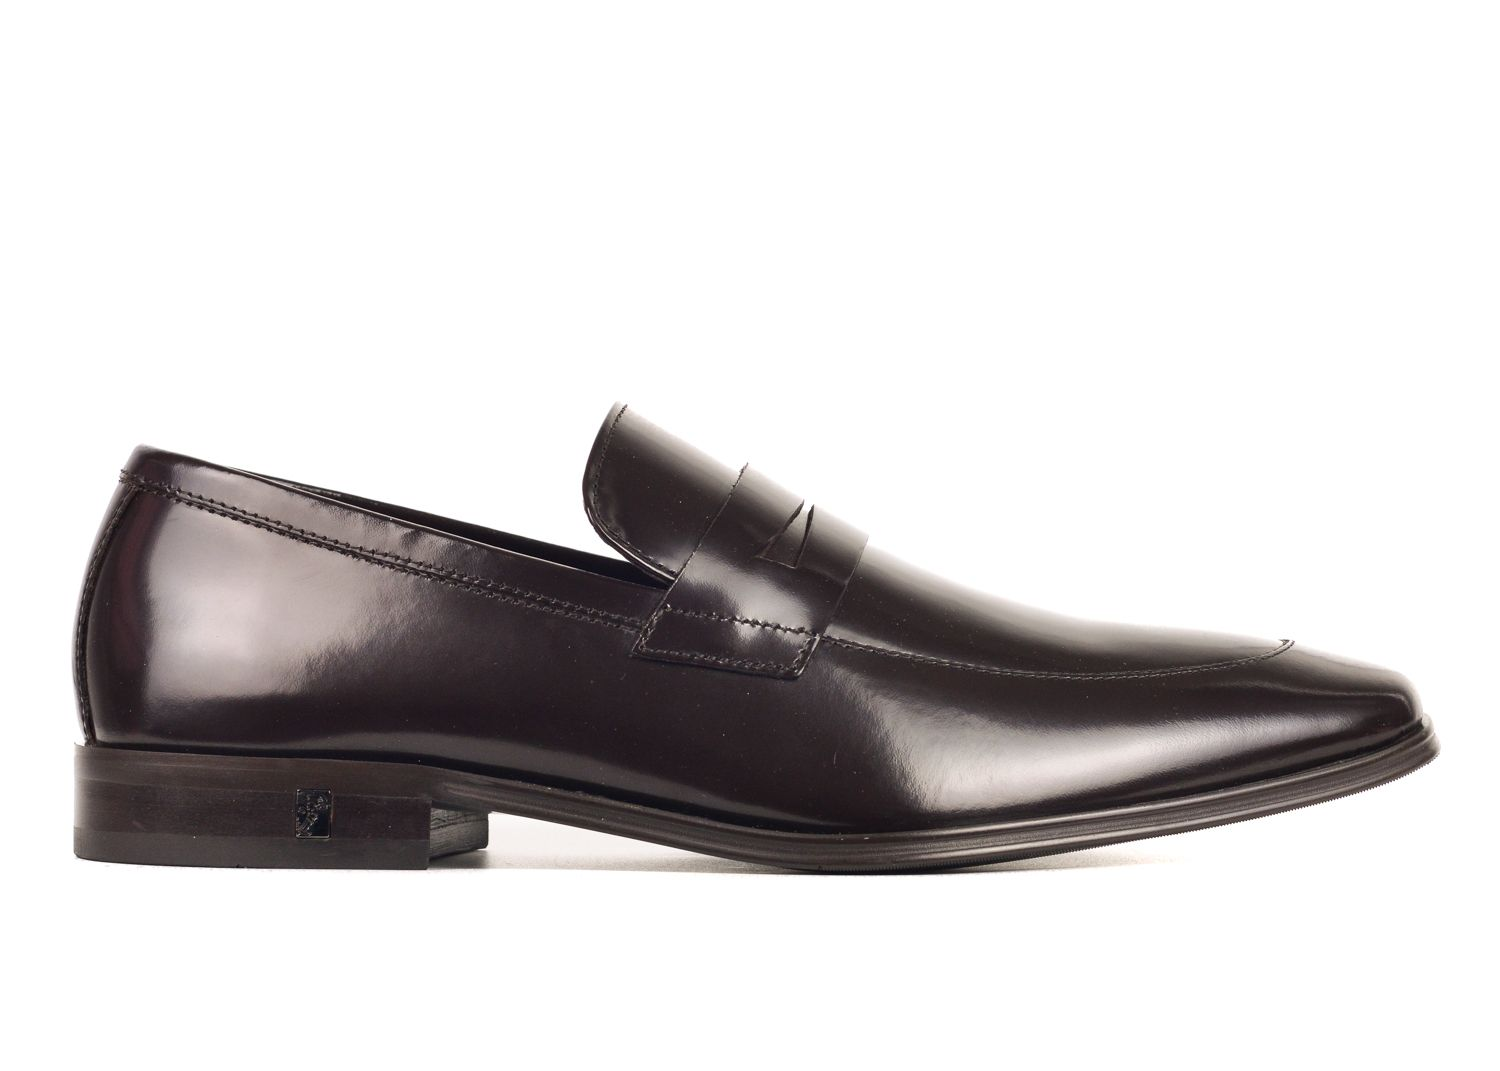 e3e2d12eb40 VERSACE VERSACE COLLECTION MENS BROWN LEATHER PENNY LOAFERS.  versace  shoes